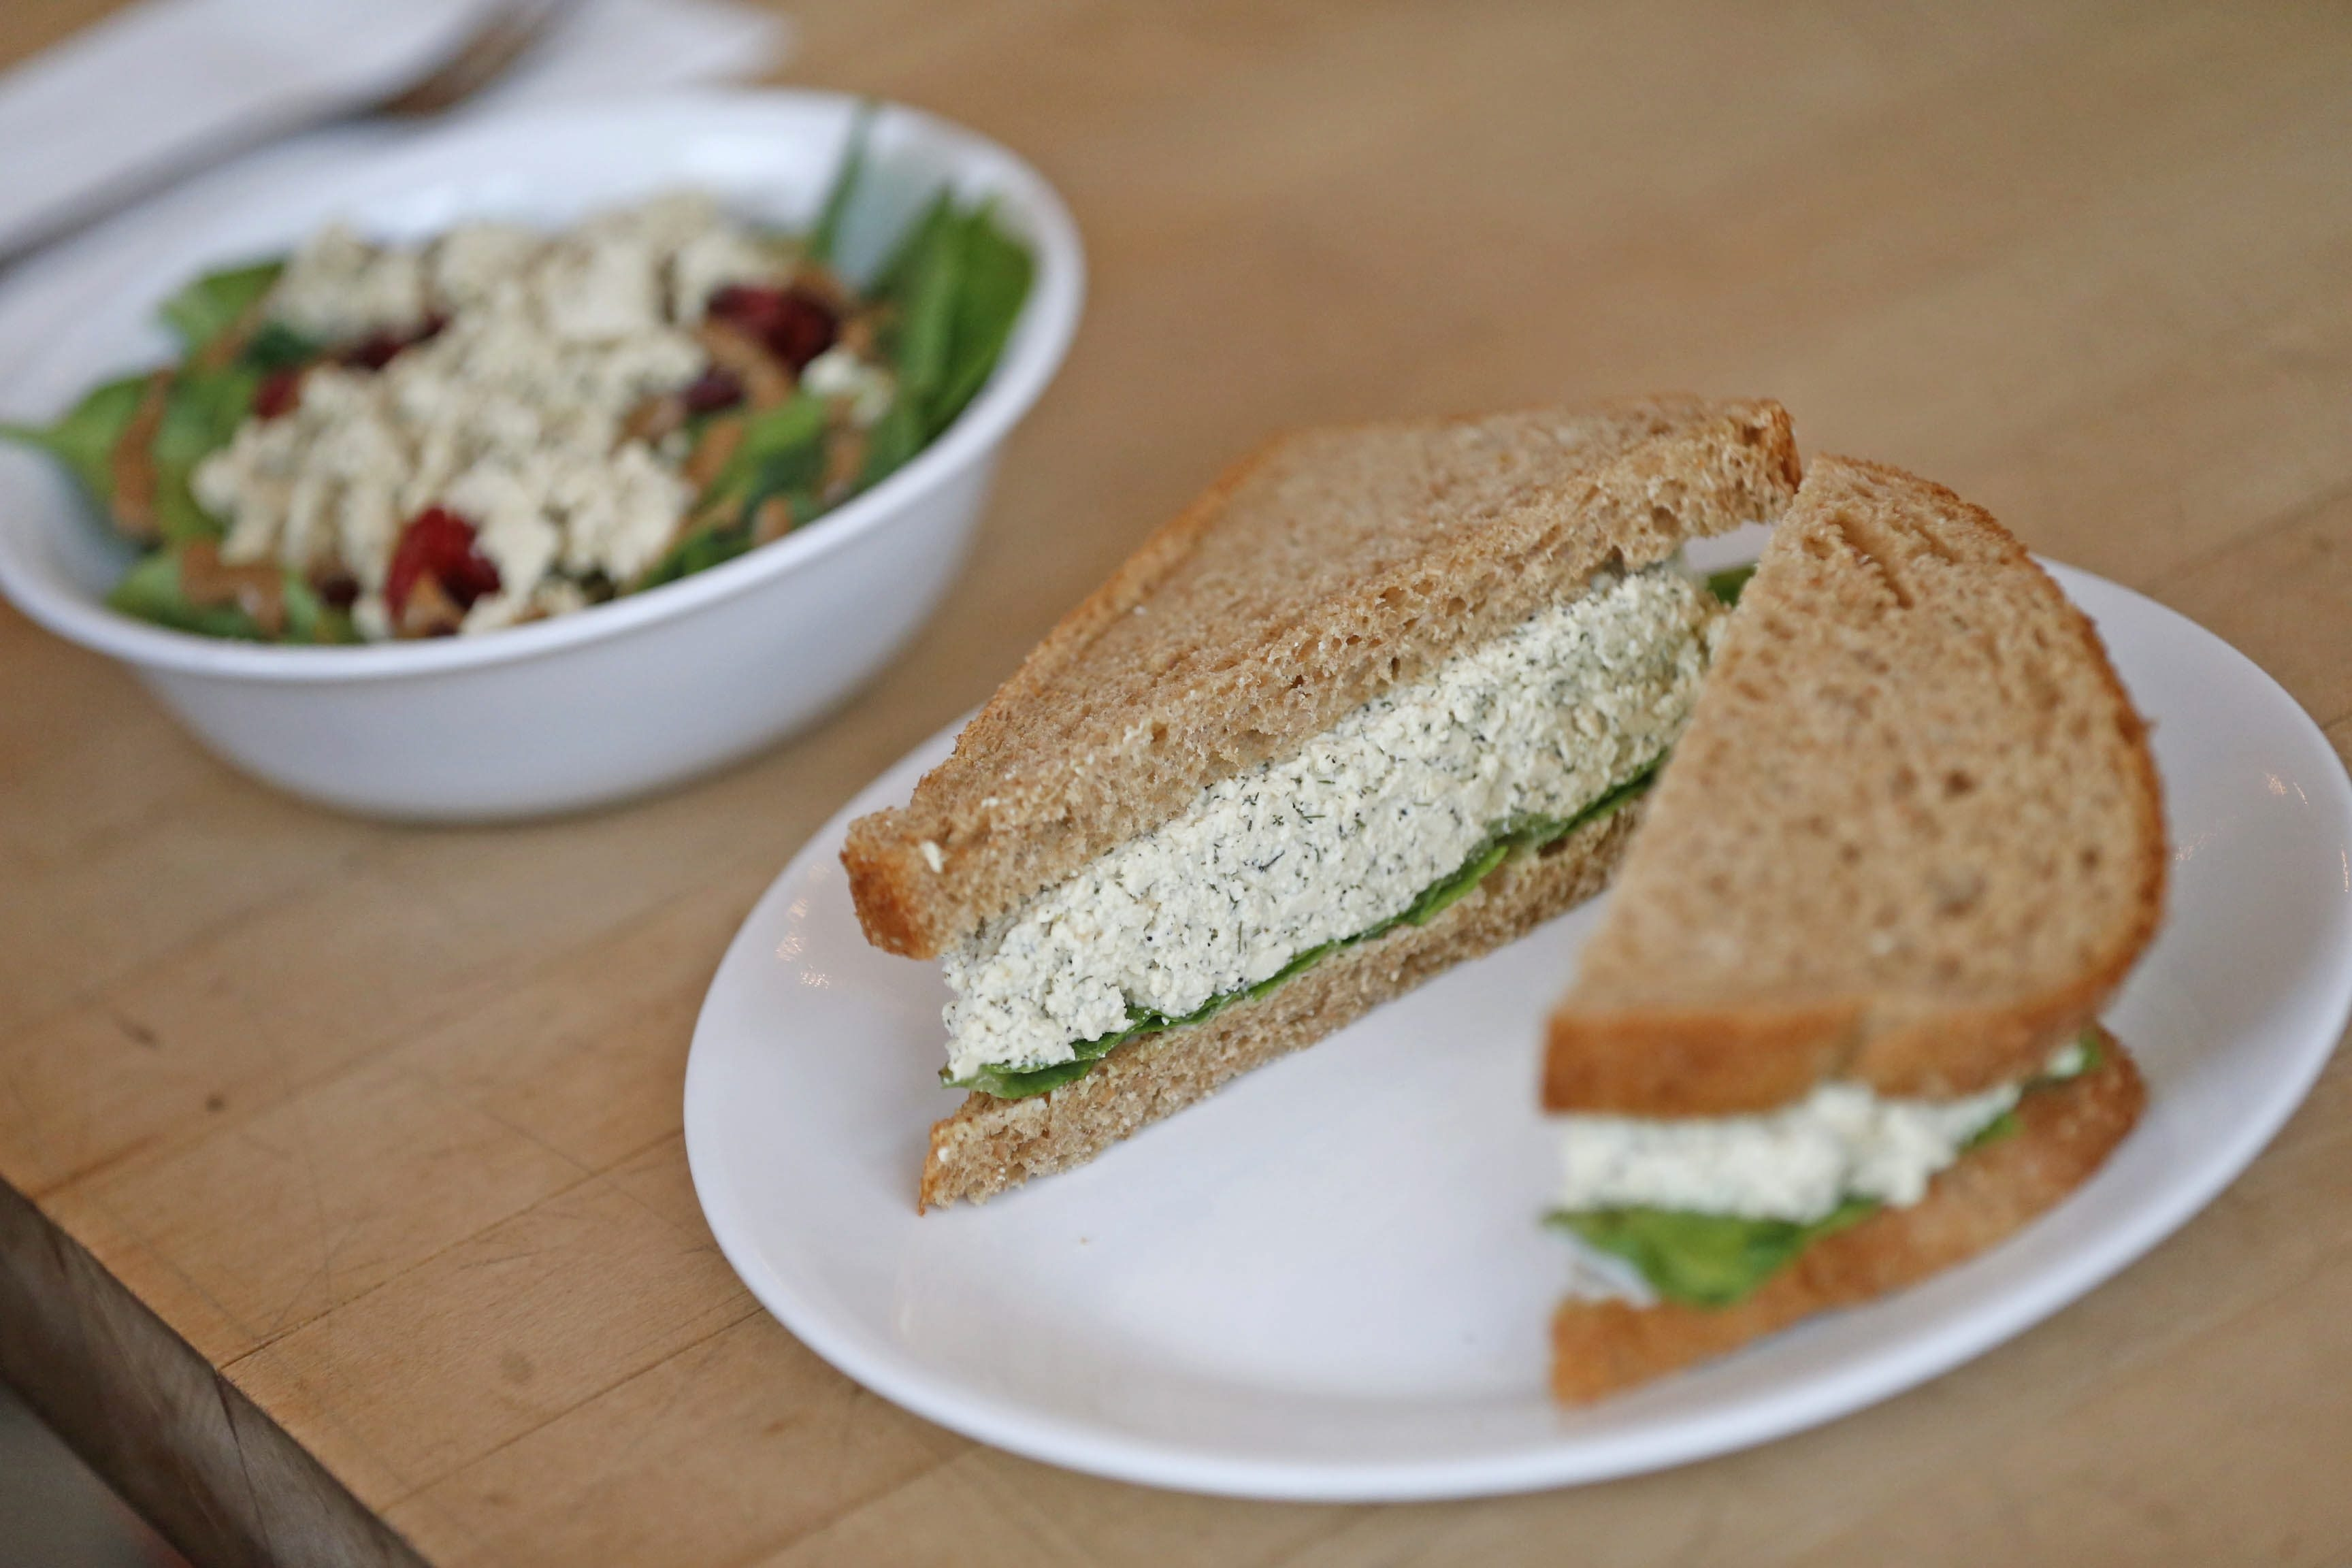 Grindhaus Cafe serves an all-vegetarian menu including Eggless Salad Sandwich and Pepita Power Salad. (Robert Kirkham/Buffalo News)